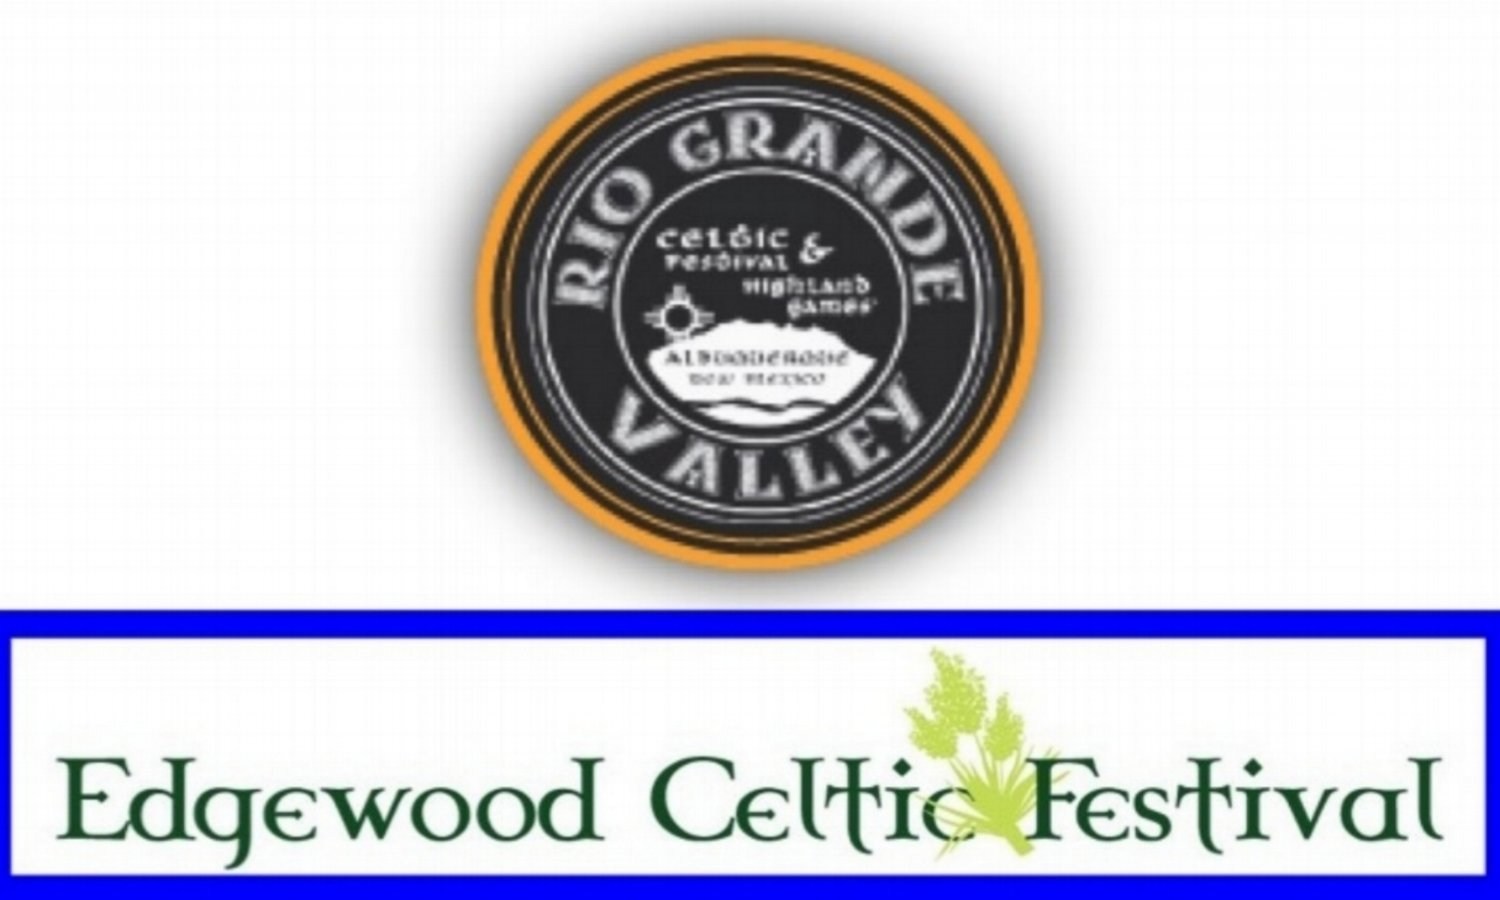 Edgewood Celtic Highland Festival